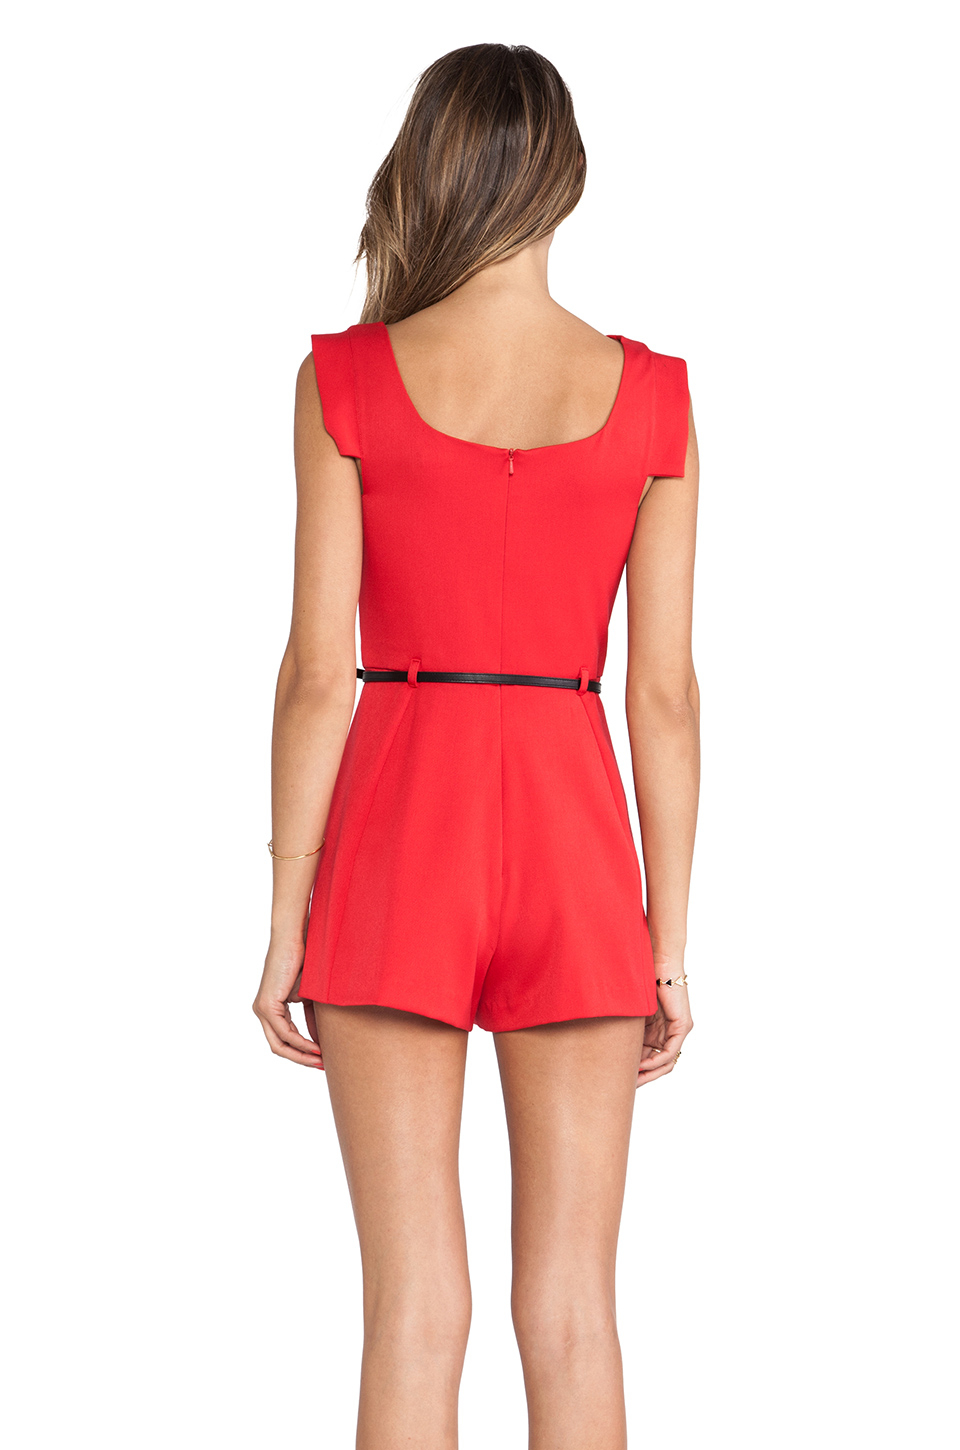 4561bc5a71f Lyst - Black Halo X Revolve Jackie O Romper in Red